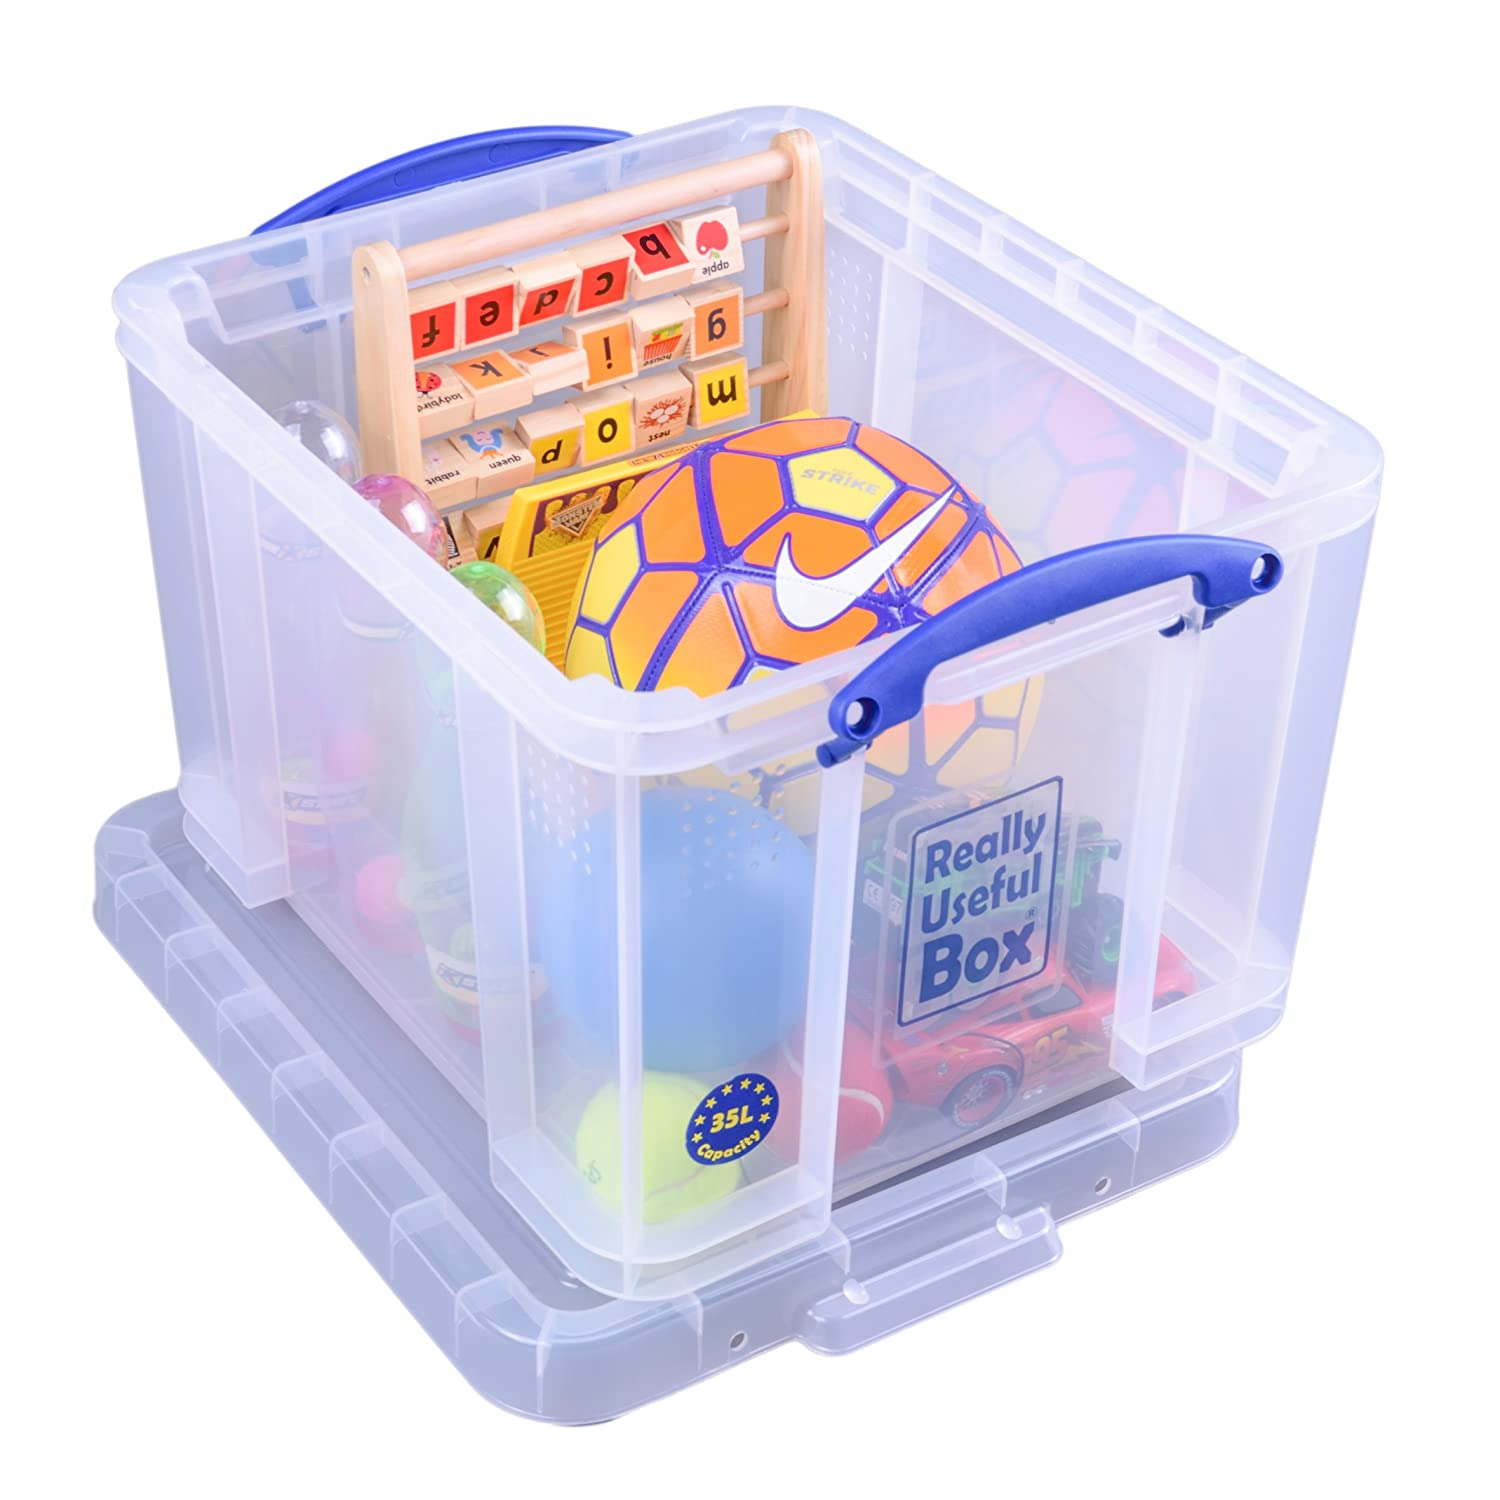 Really Useful Storage Box 35 Litre Clear Ref 35C Really Useful Products Ltd